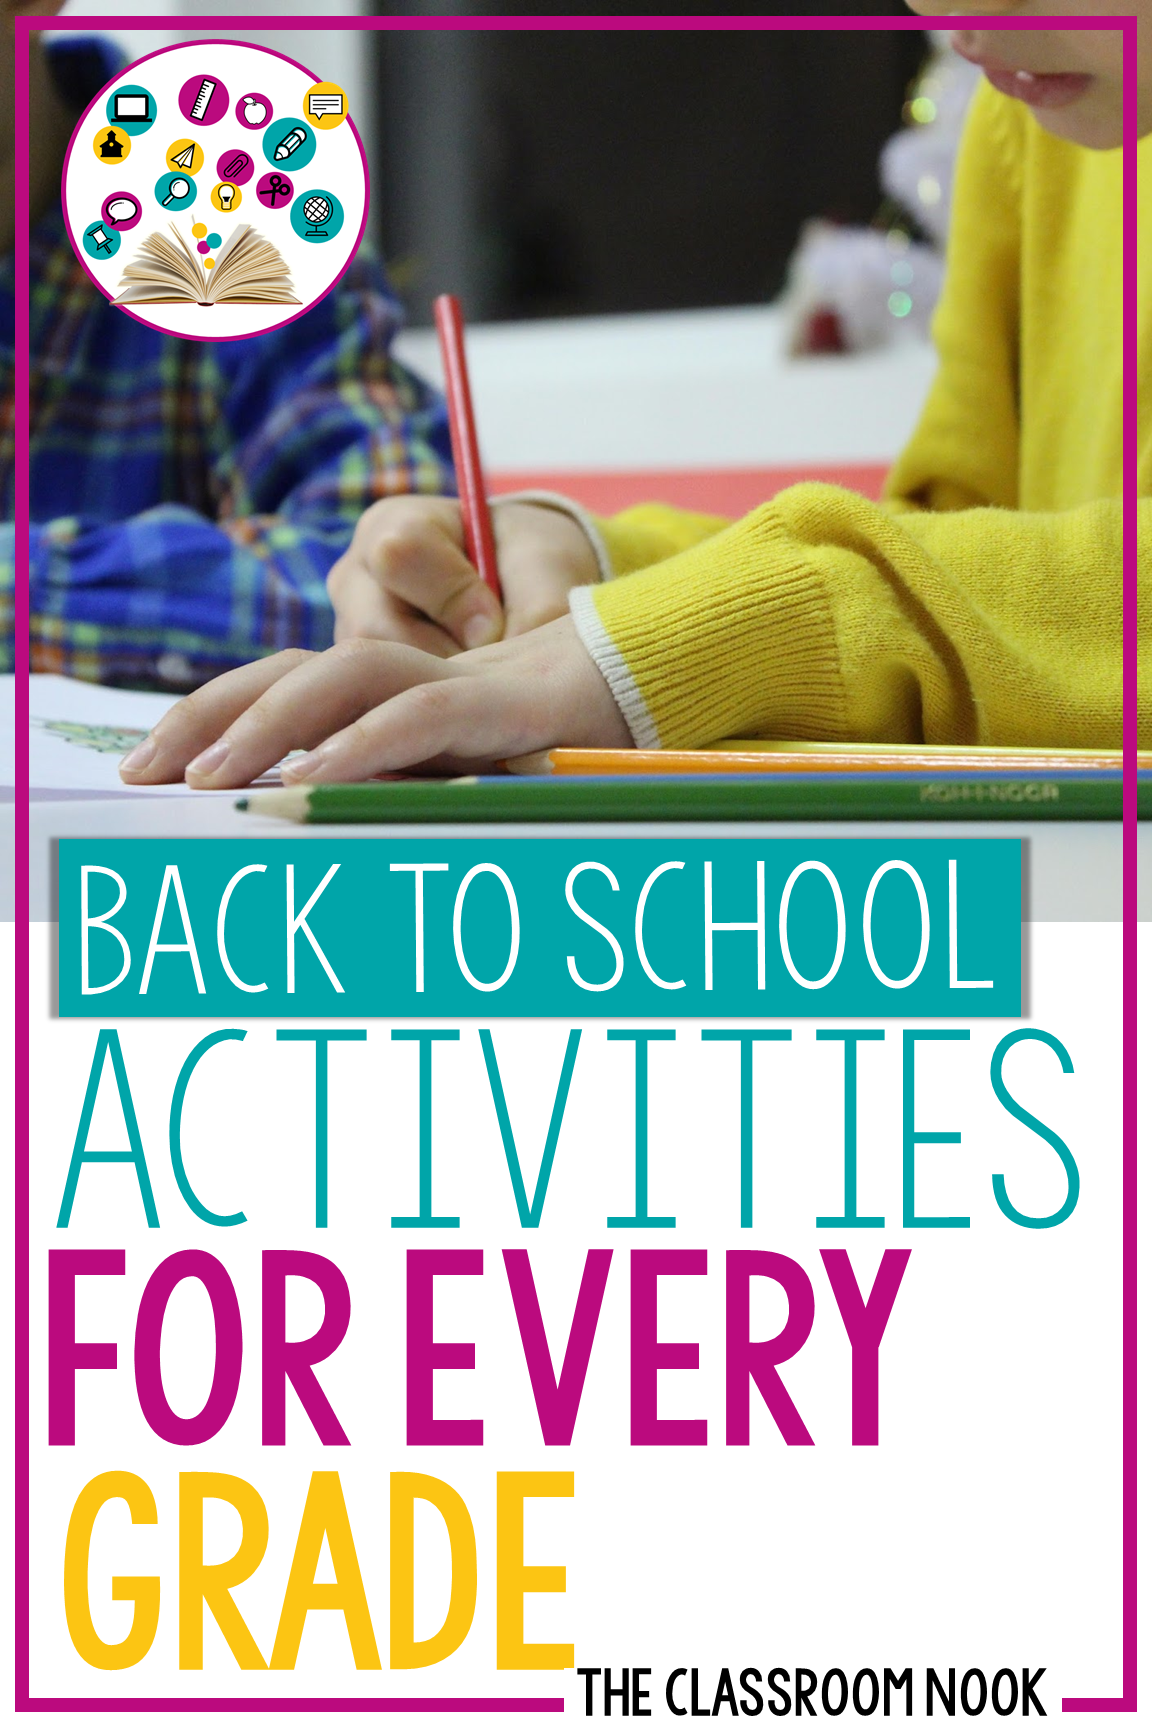 No matter what elementary grade you teach, this post is loaded with back to school crafts, games, and activities for every level! #backtoschool #gettoknowyouactivities